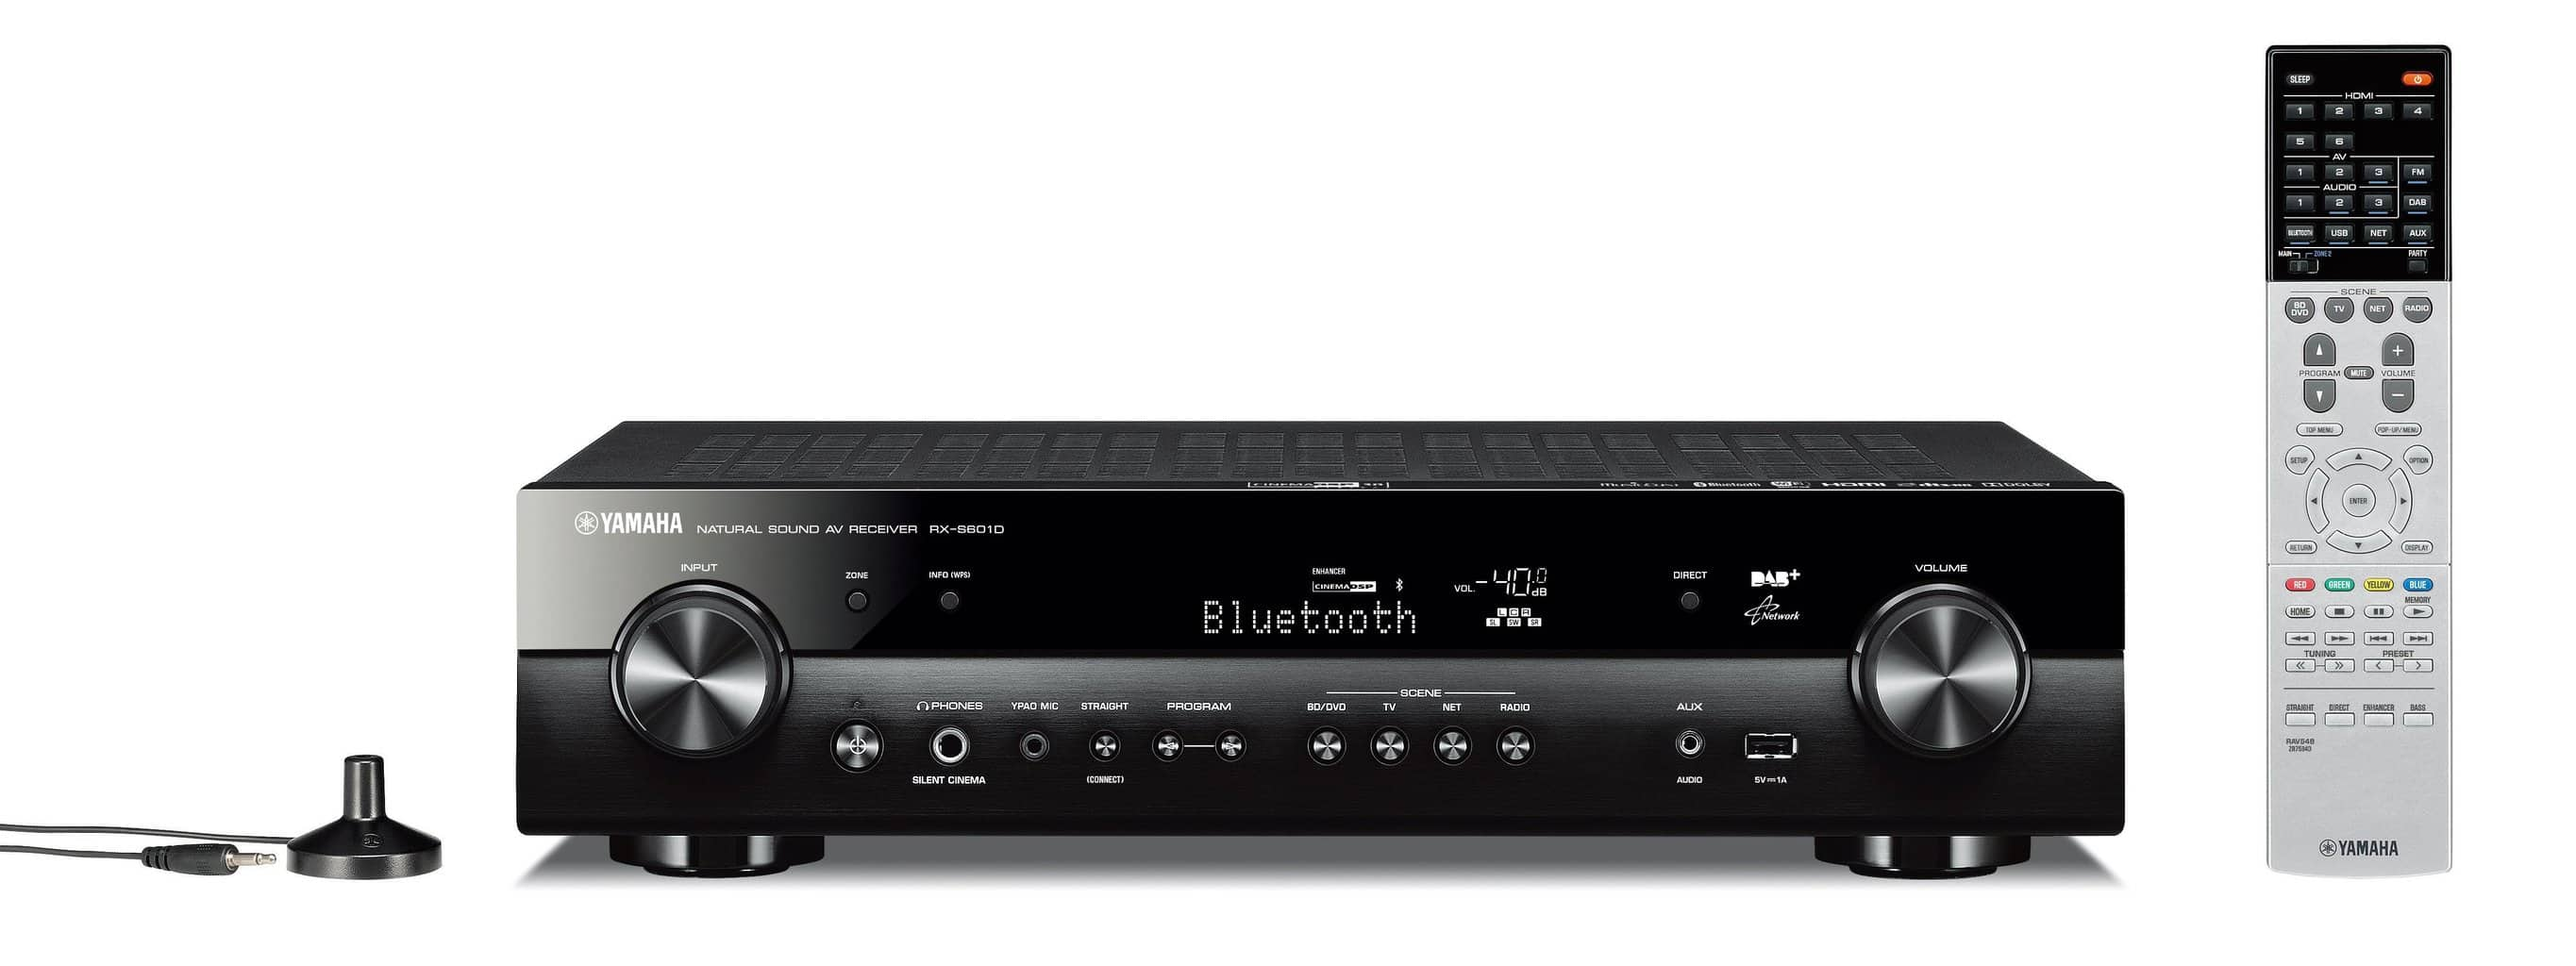 Cast Video To Yamaha Receiver